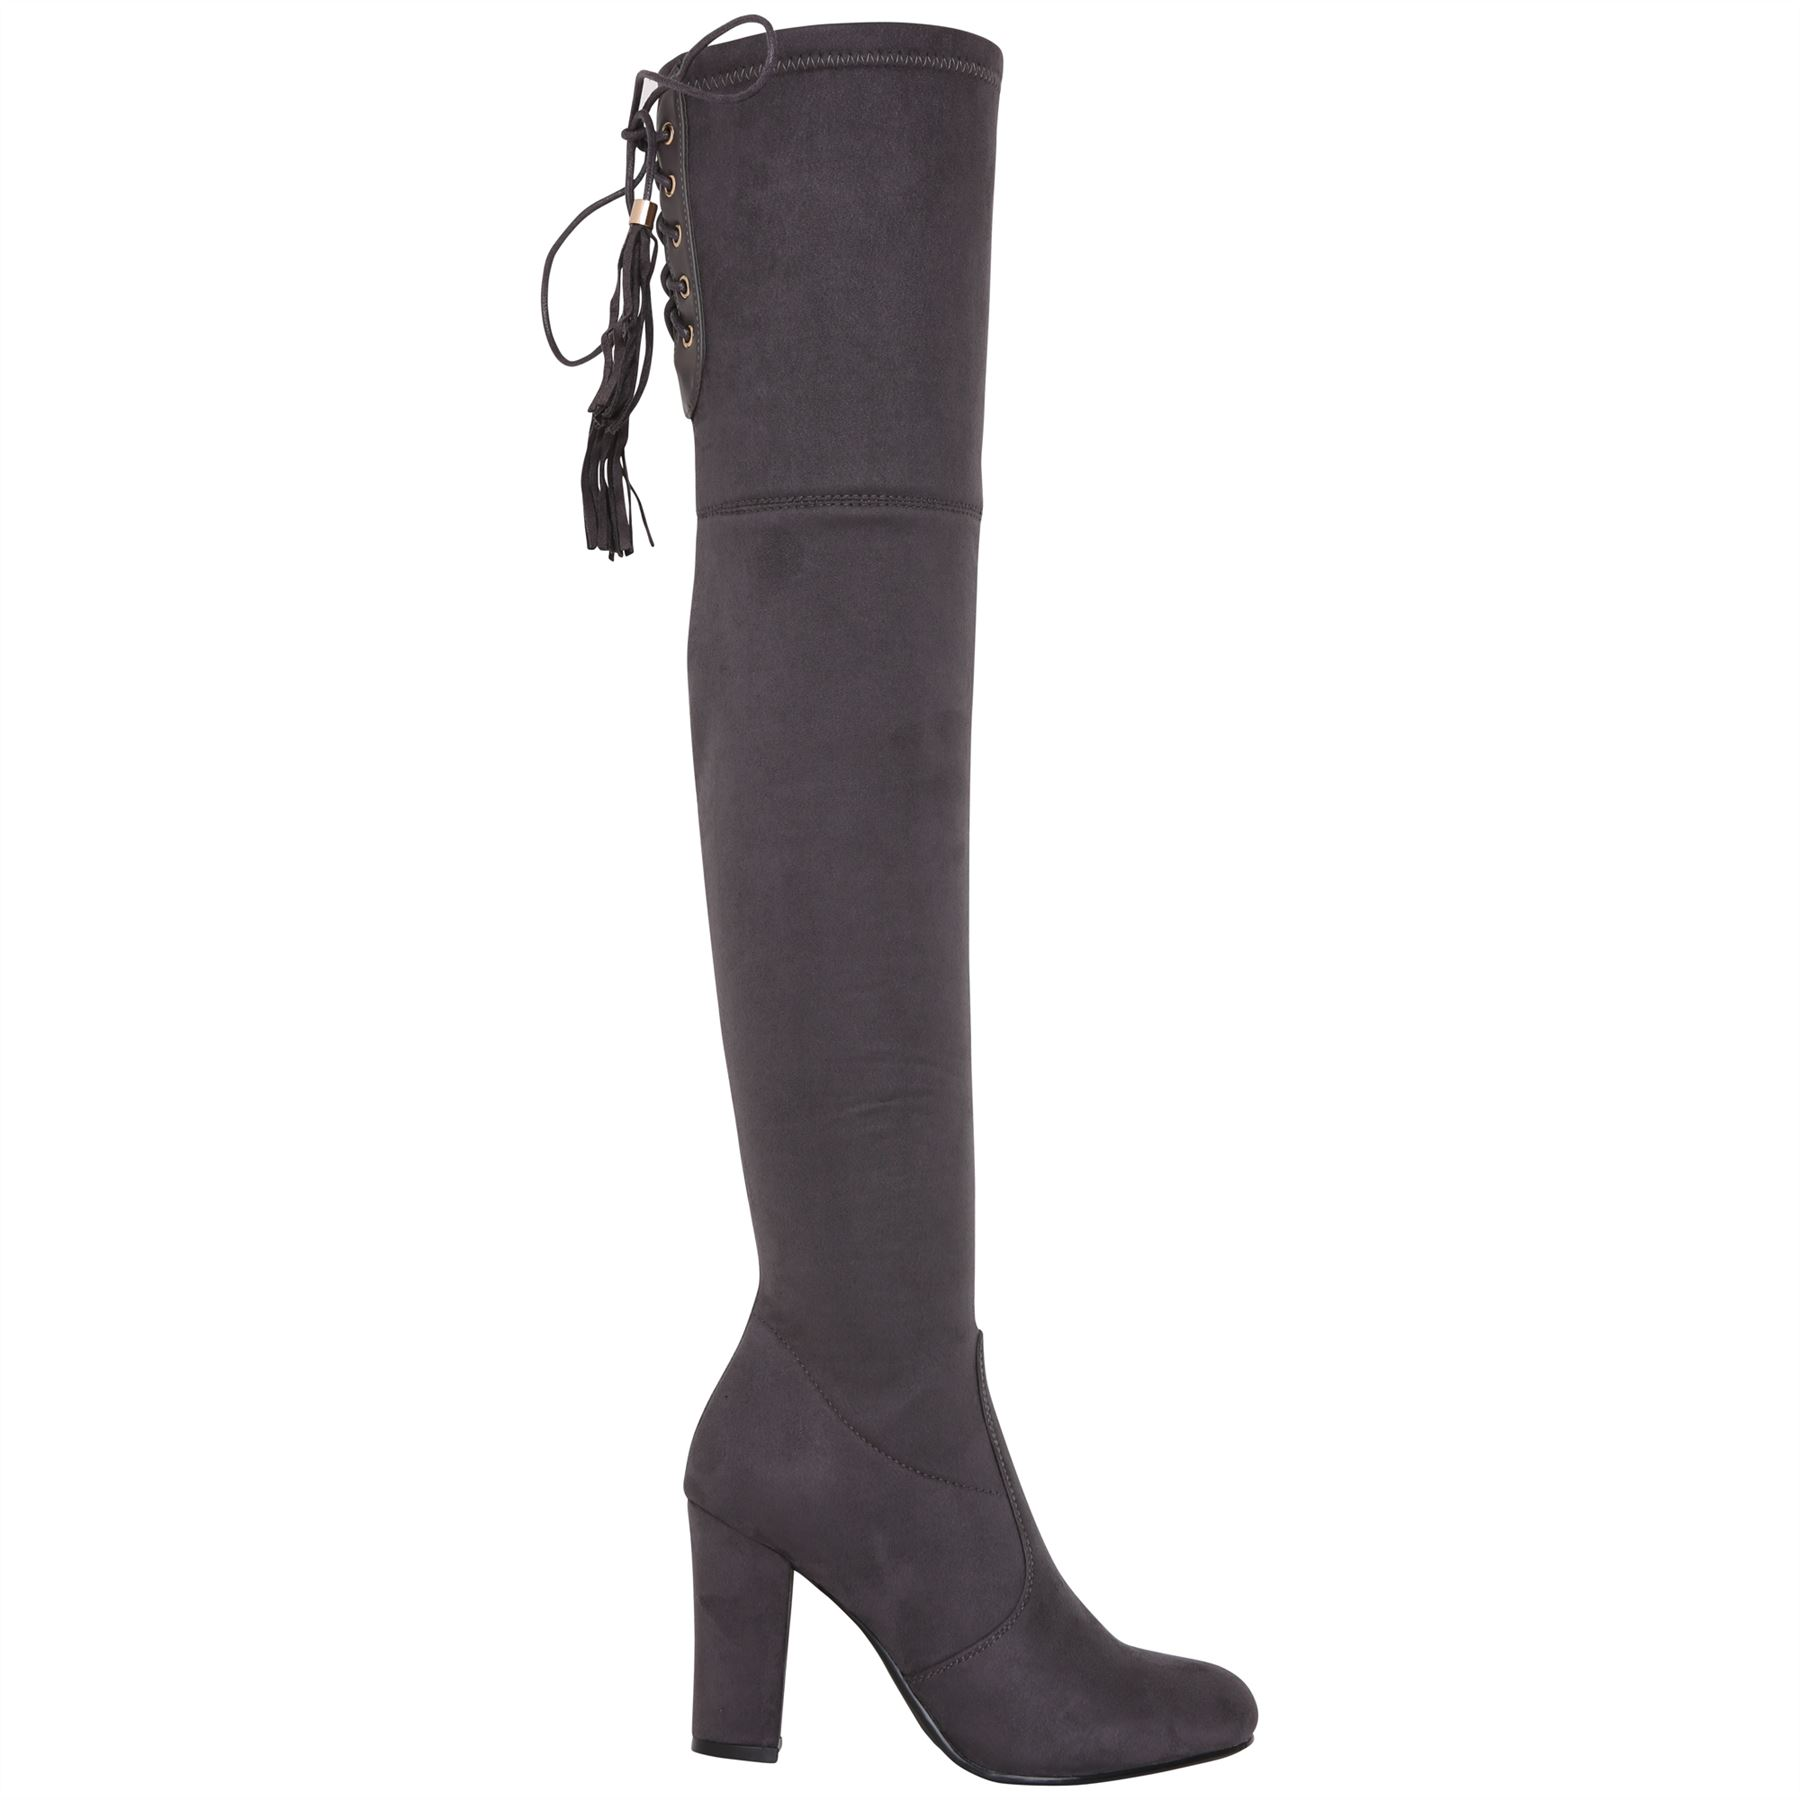 Womens-Over-Knee-High-Boots-Ladies-Low-Block-Heel-Riding-Stretch-Winter-Shoes miniatura 12